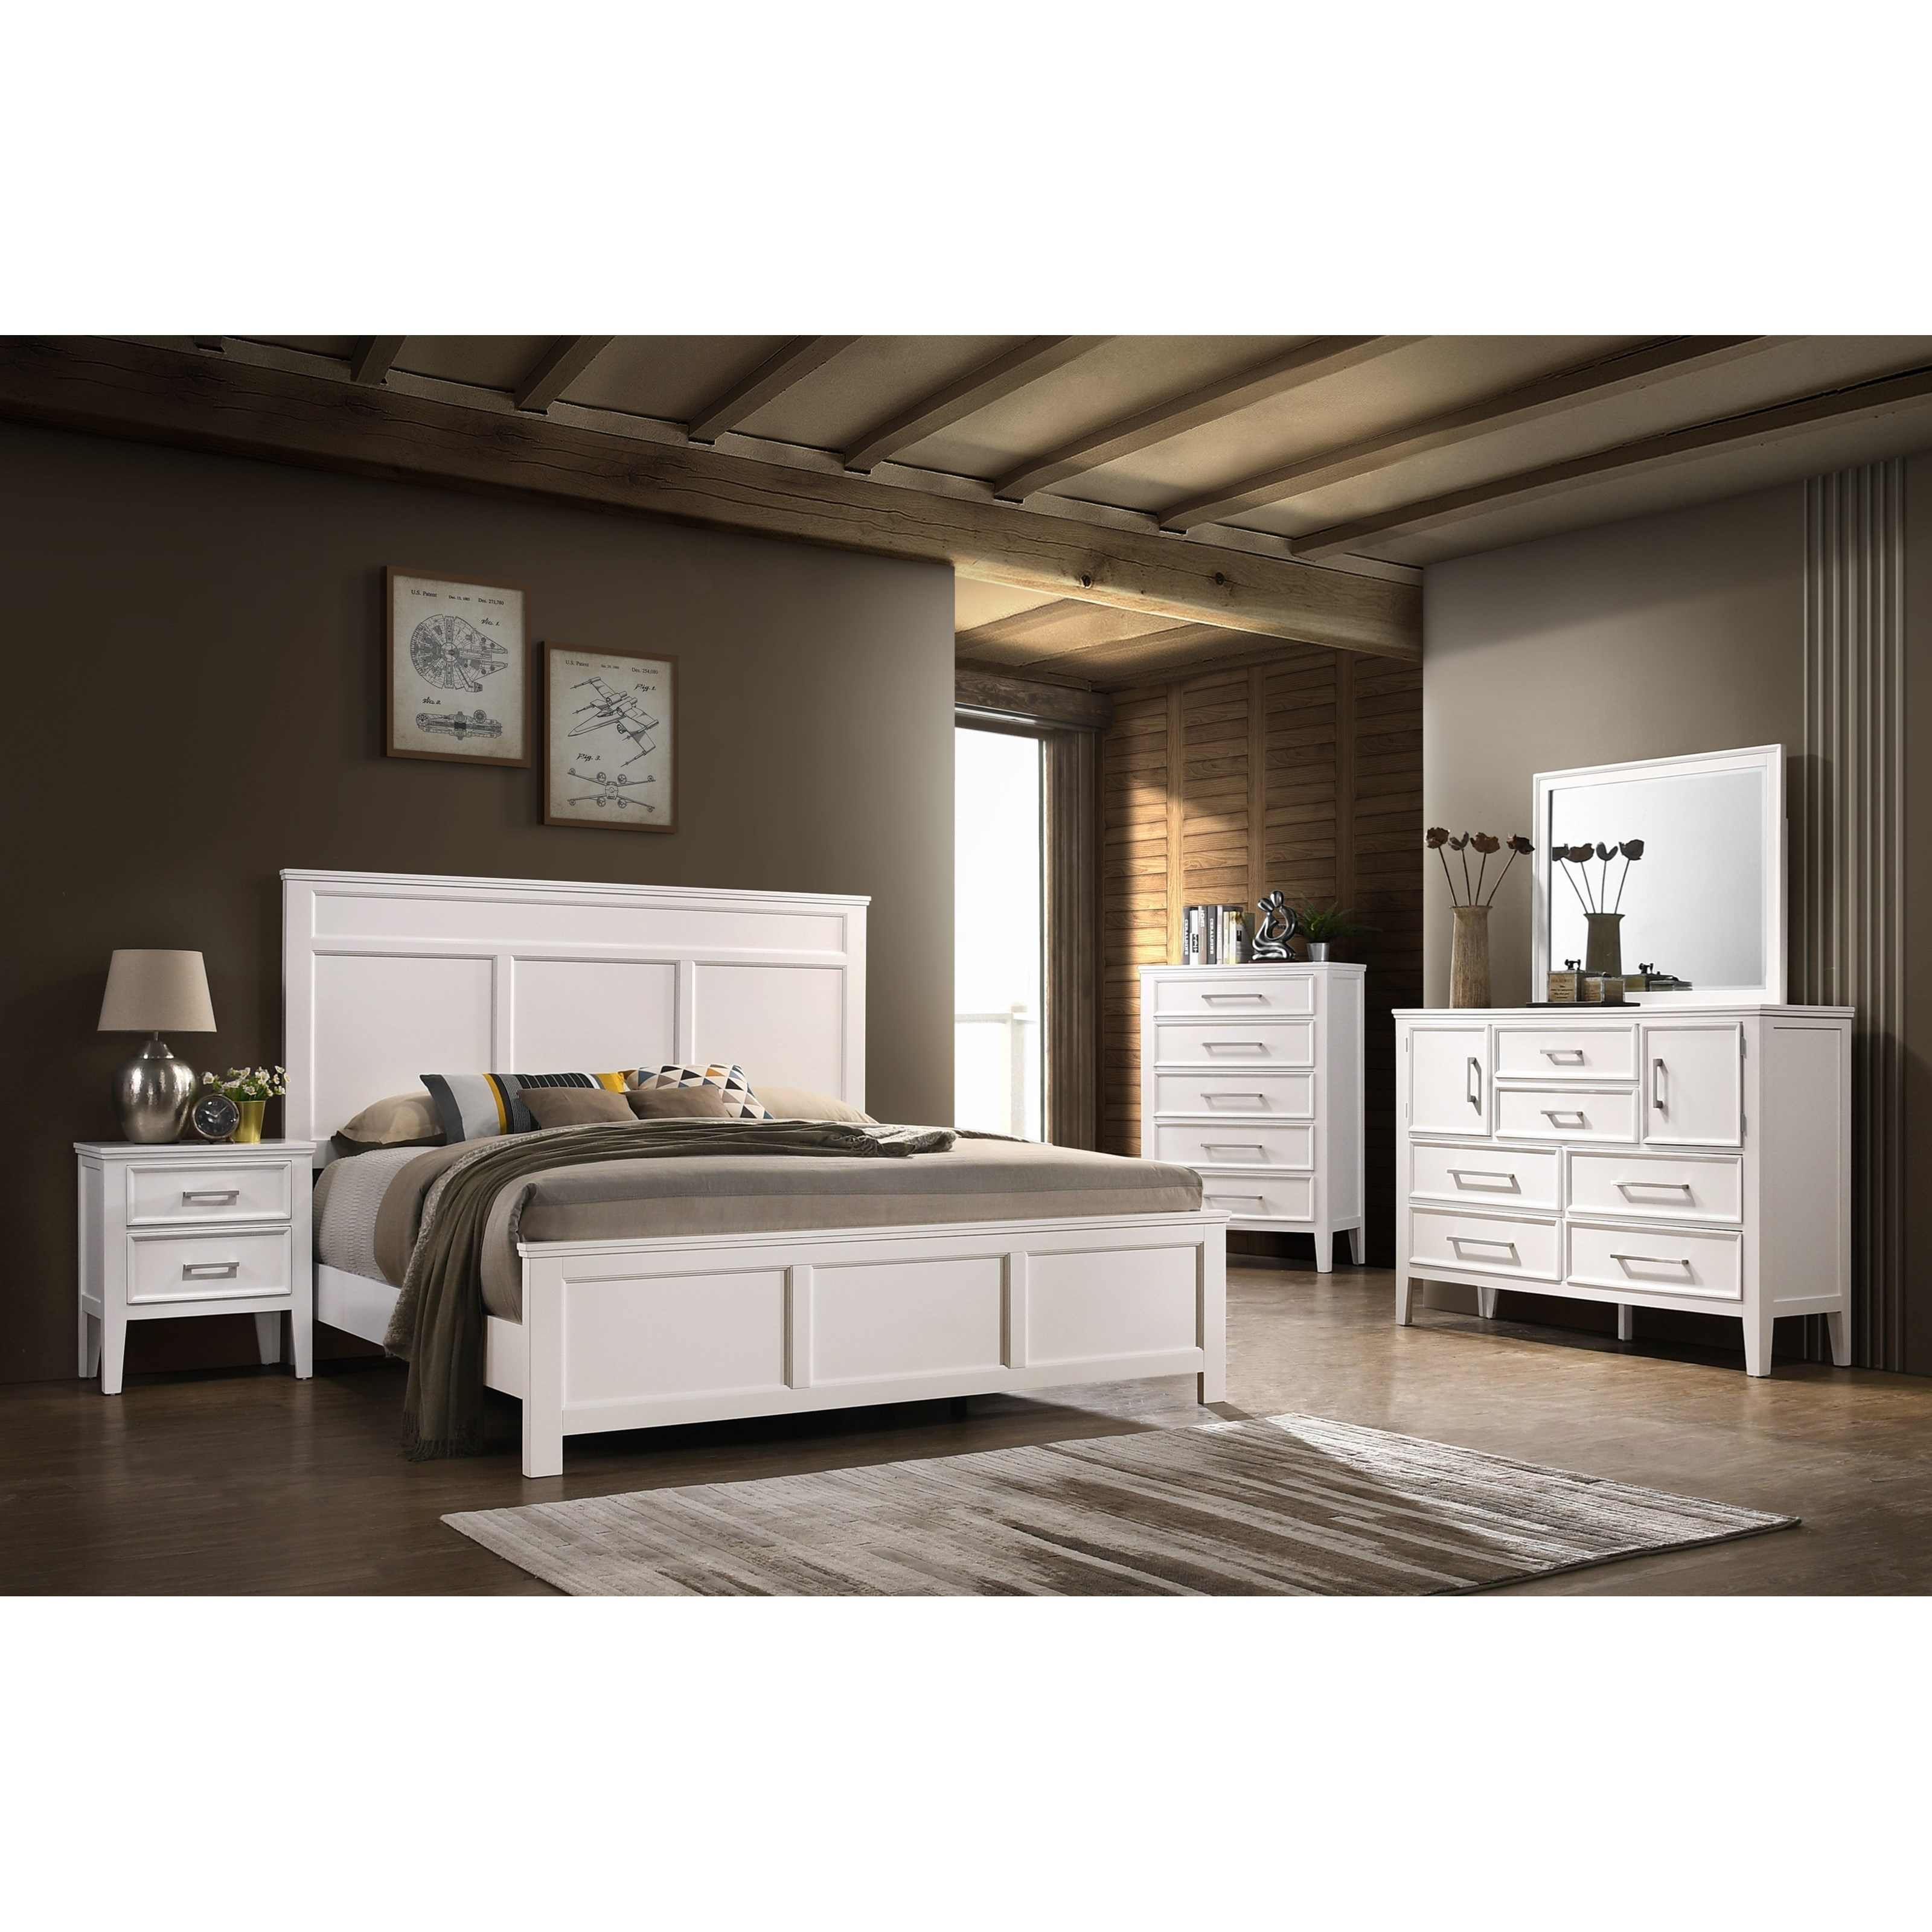 Andover Queen Bedroom Group by New Classic at Value City Furniture